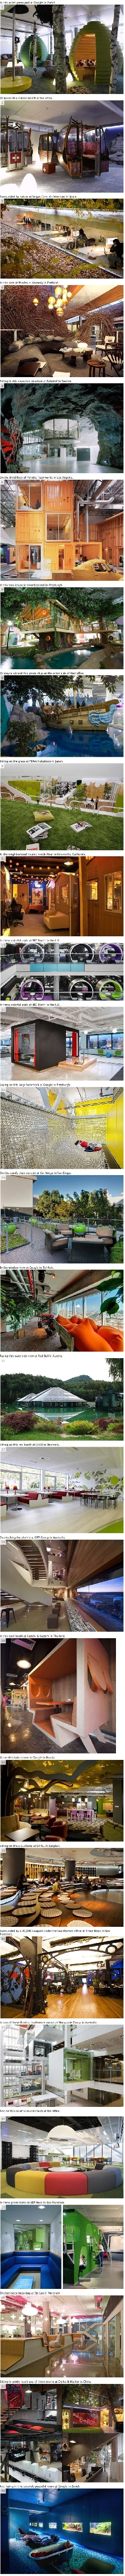 Some very cool offices...